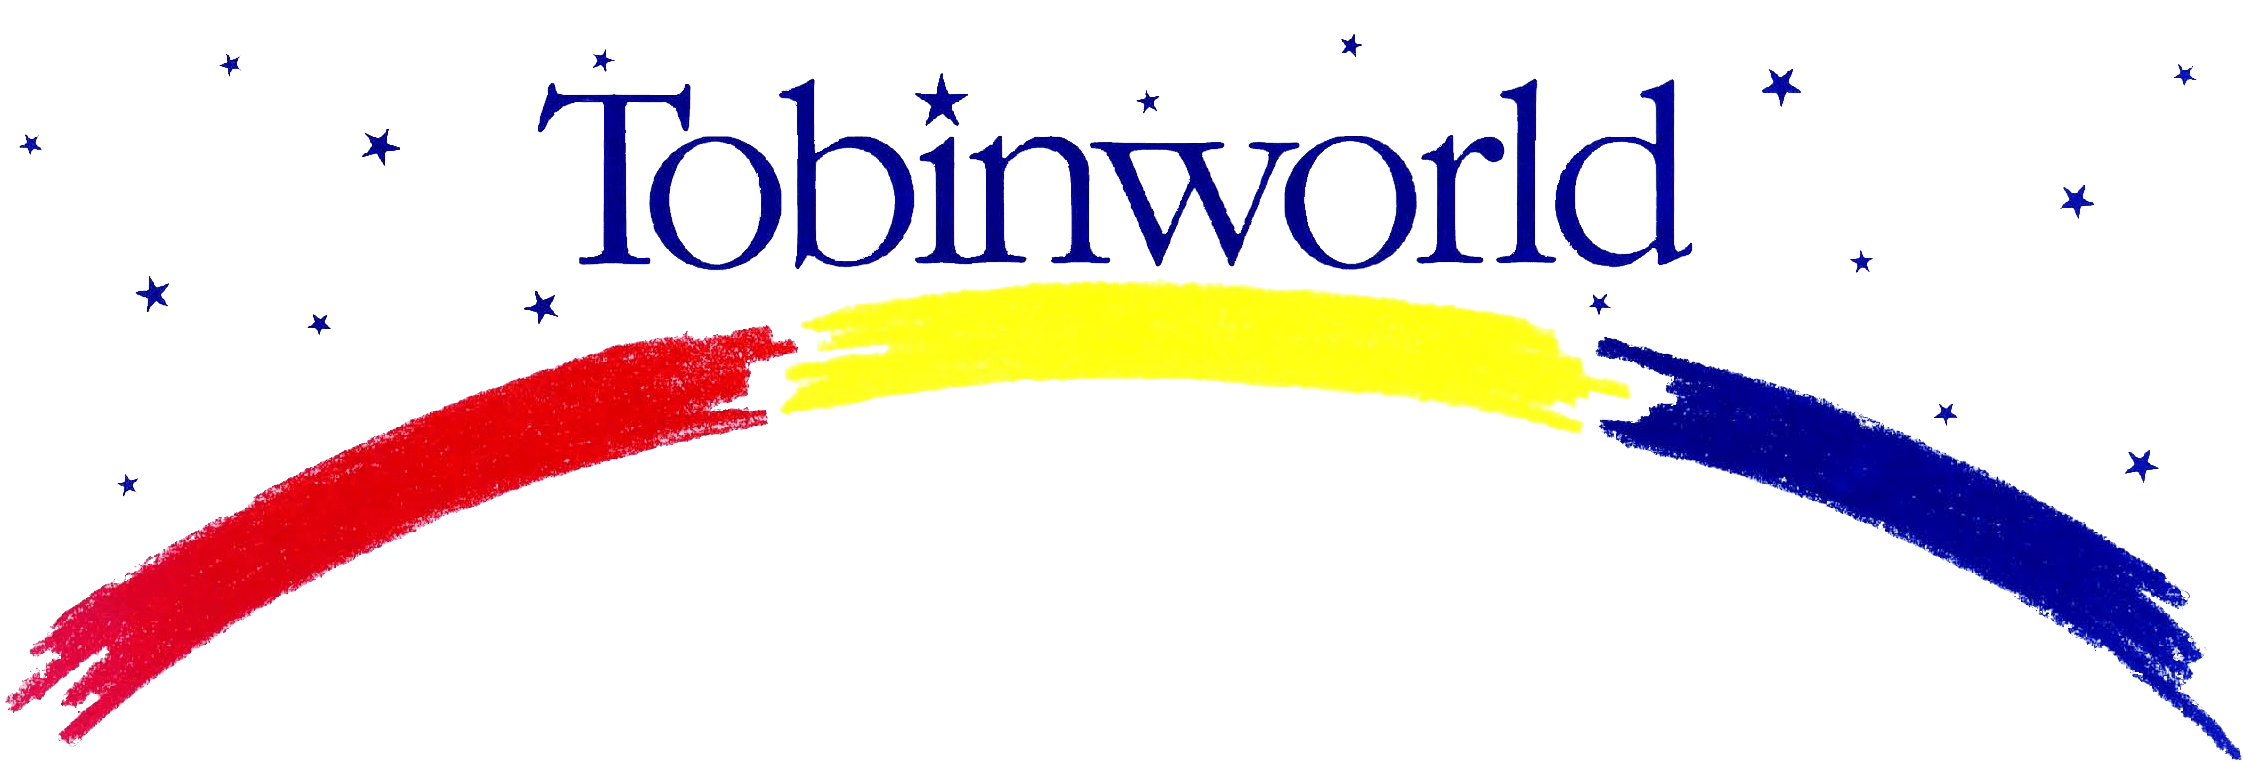 Tobinworld logo-transparent